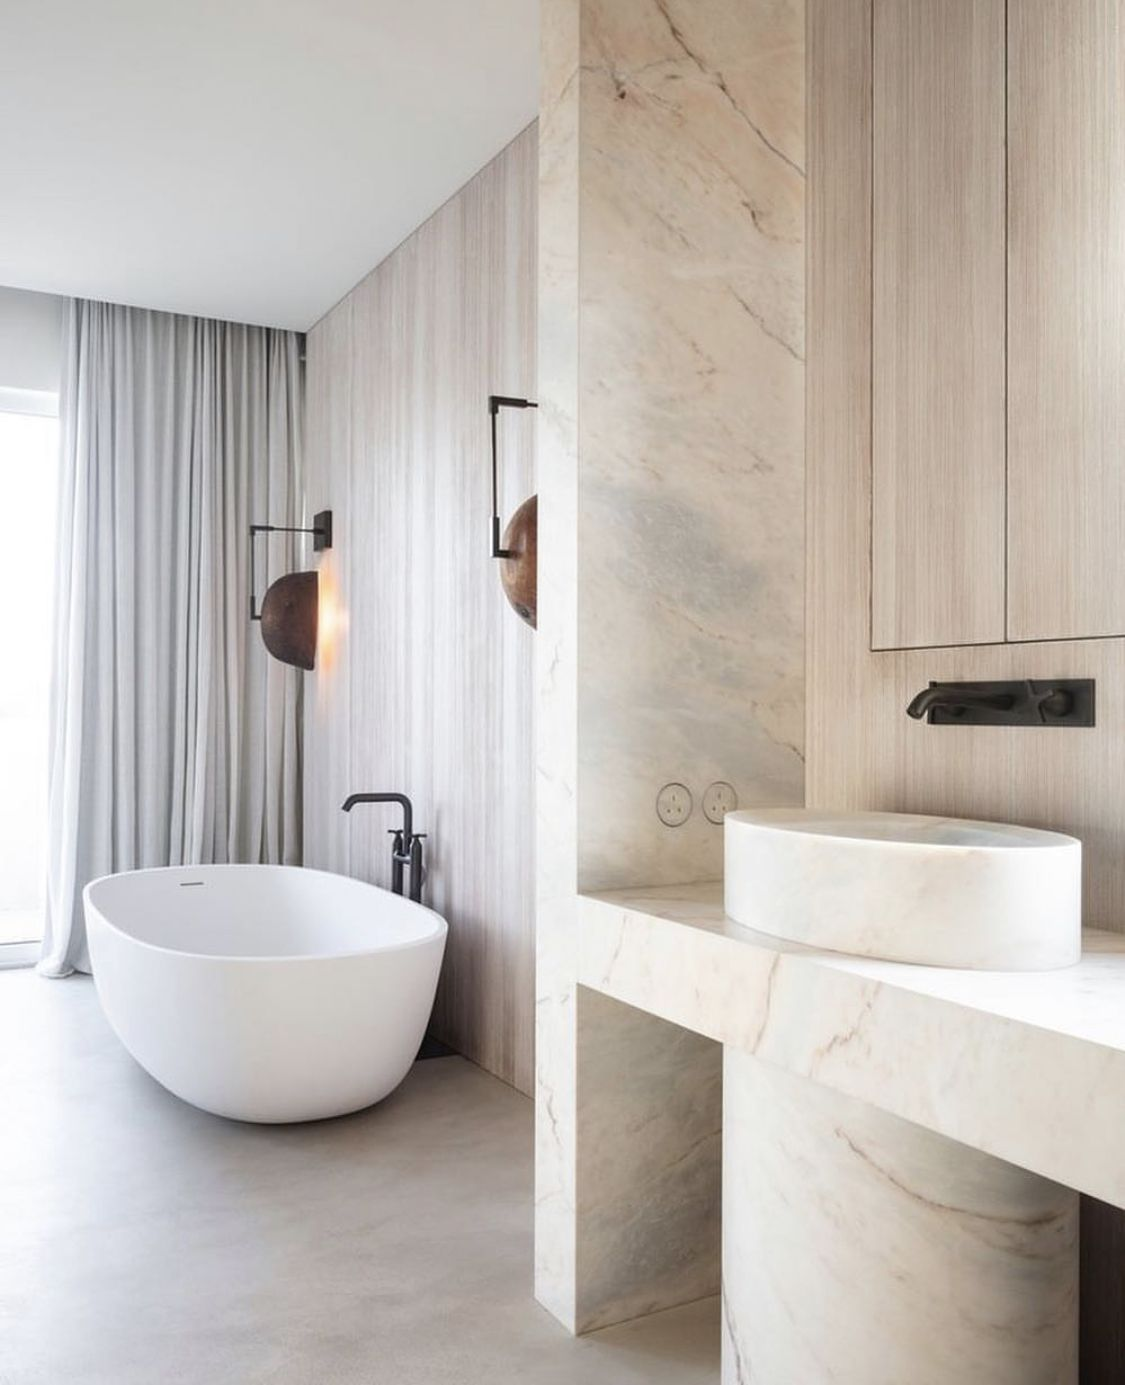 Pin By Orion On Bundy Modern Home Interior Design Bathroom Interior Design Interior